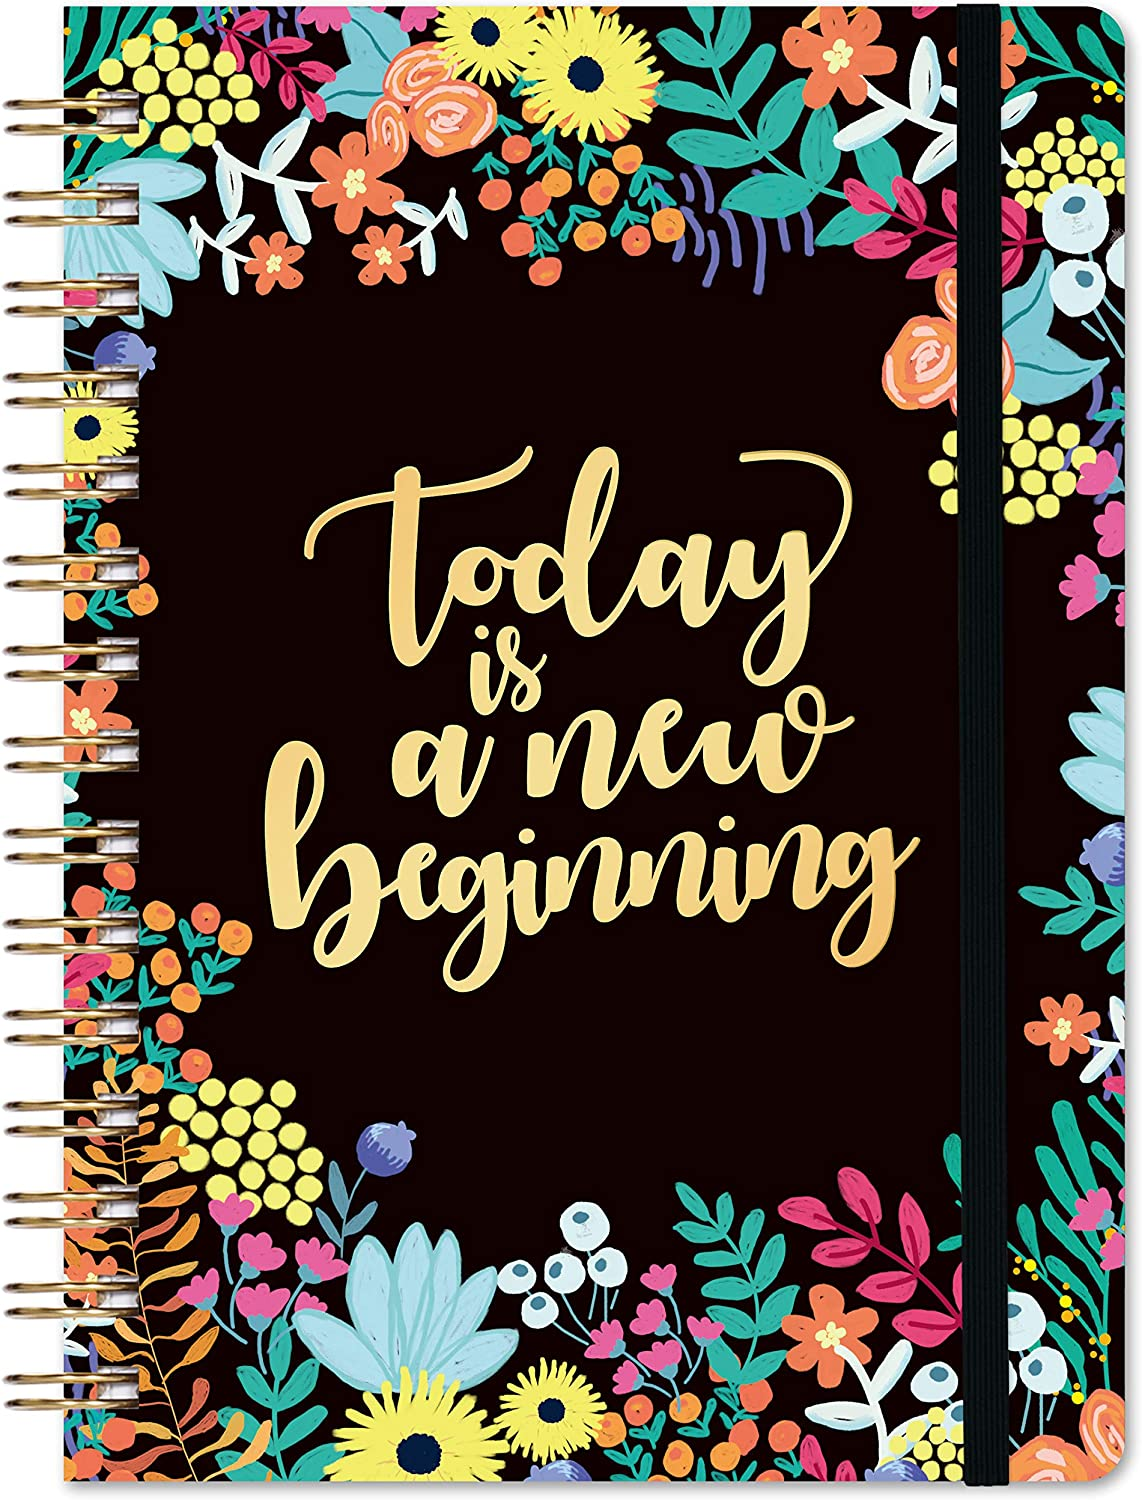 """Ruled Notebook/Journal - Lined Journal, 6.3"""" × 8.35"""", Spiral Journal, Hardcover, Back Pocket, Elastic Closure, Strong Twin-Wire Binding with Premium Paper, Spiral Notebook/Journal"""